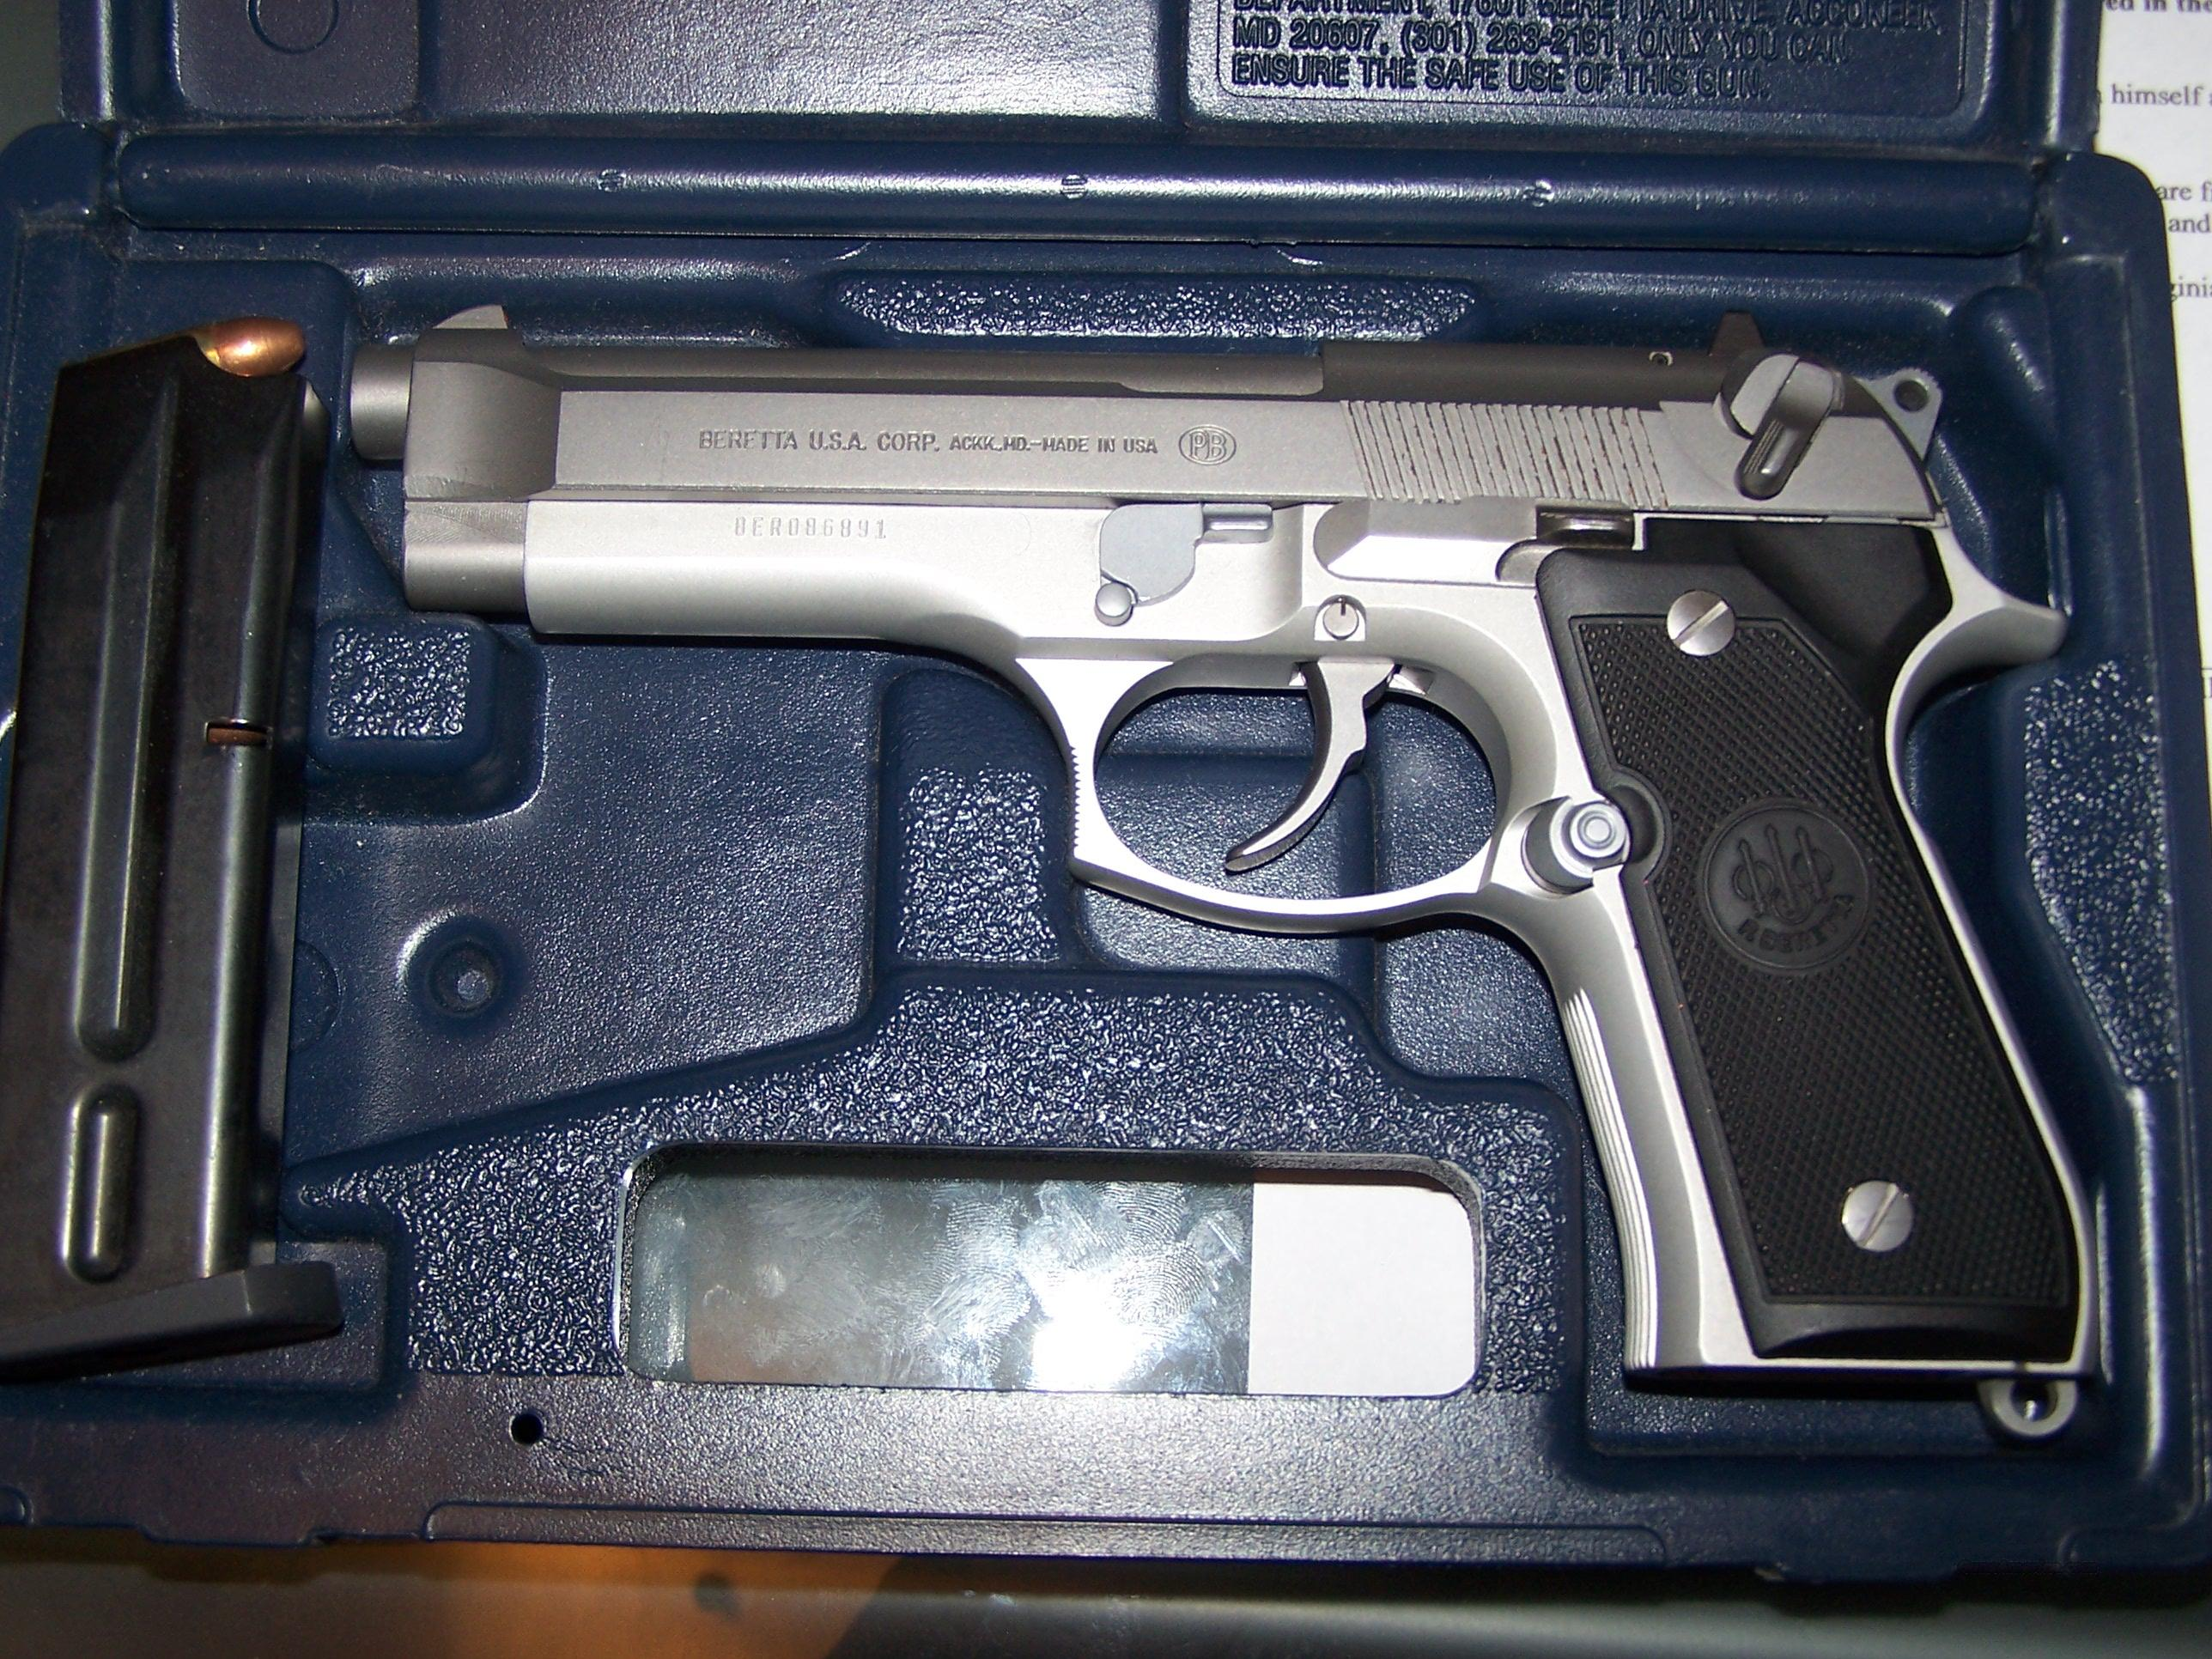 Beretta 92 FS Stainless Steel  Guns > Pistols > Beretta Pistols > Model 92 Series